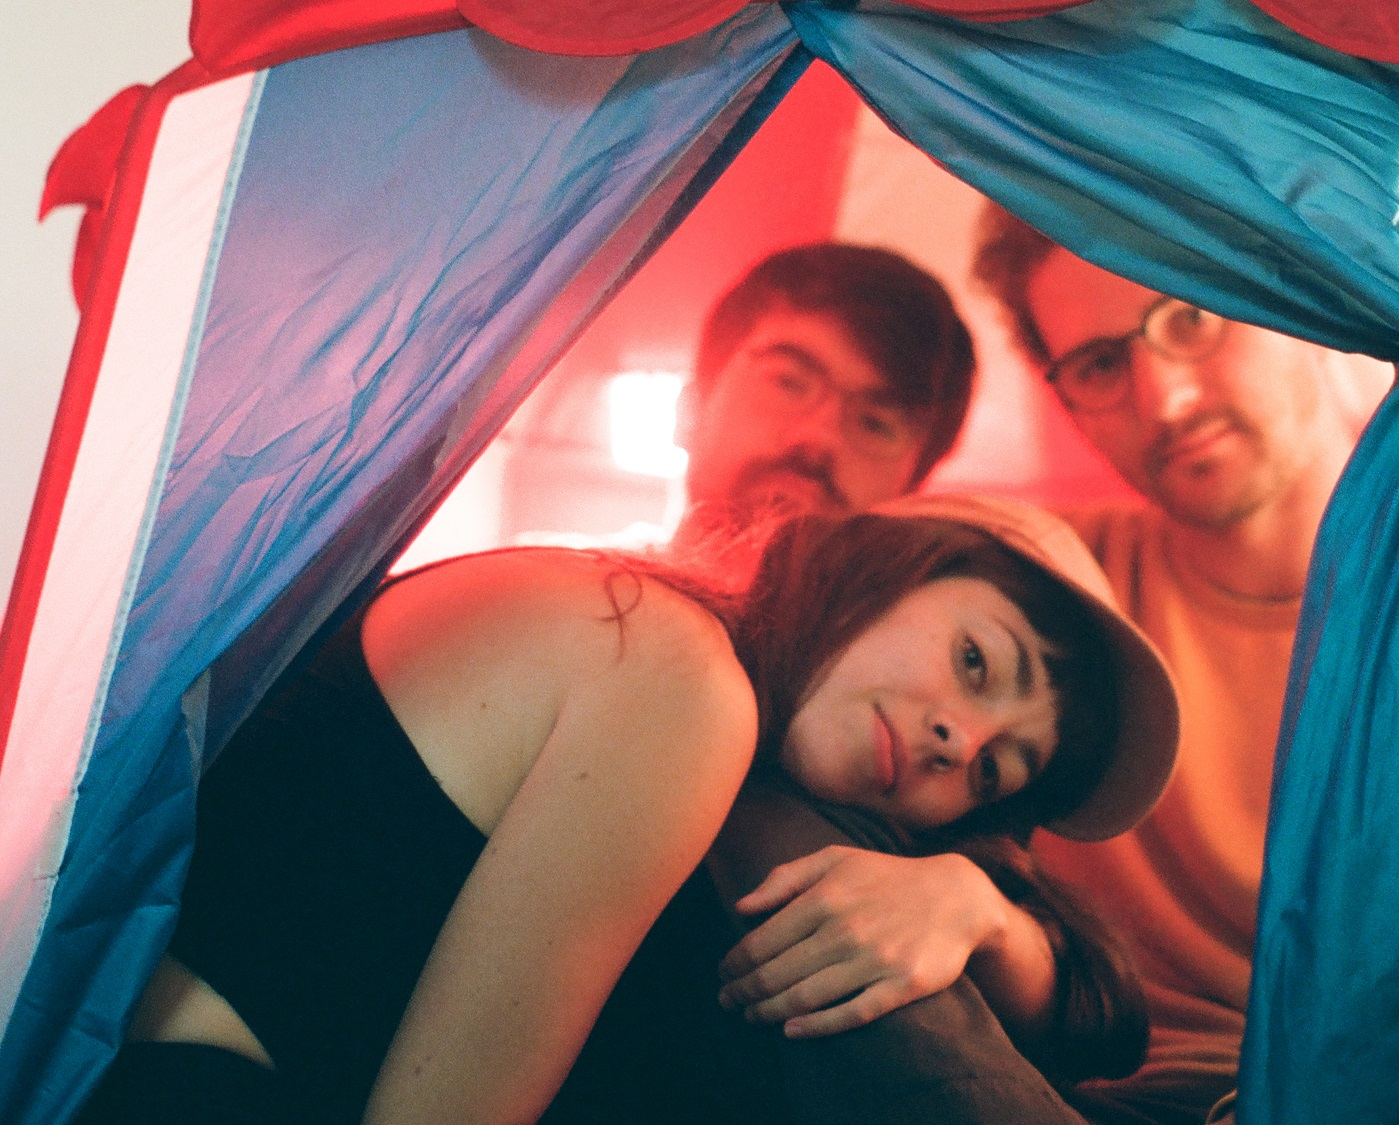 ZRL, the trio of Zachary Good, Lia Kohl and Ryan Packard, discuss the artistic forces that informed their new album, Our Savings.